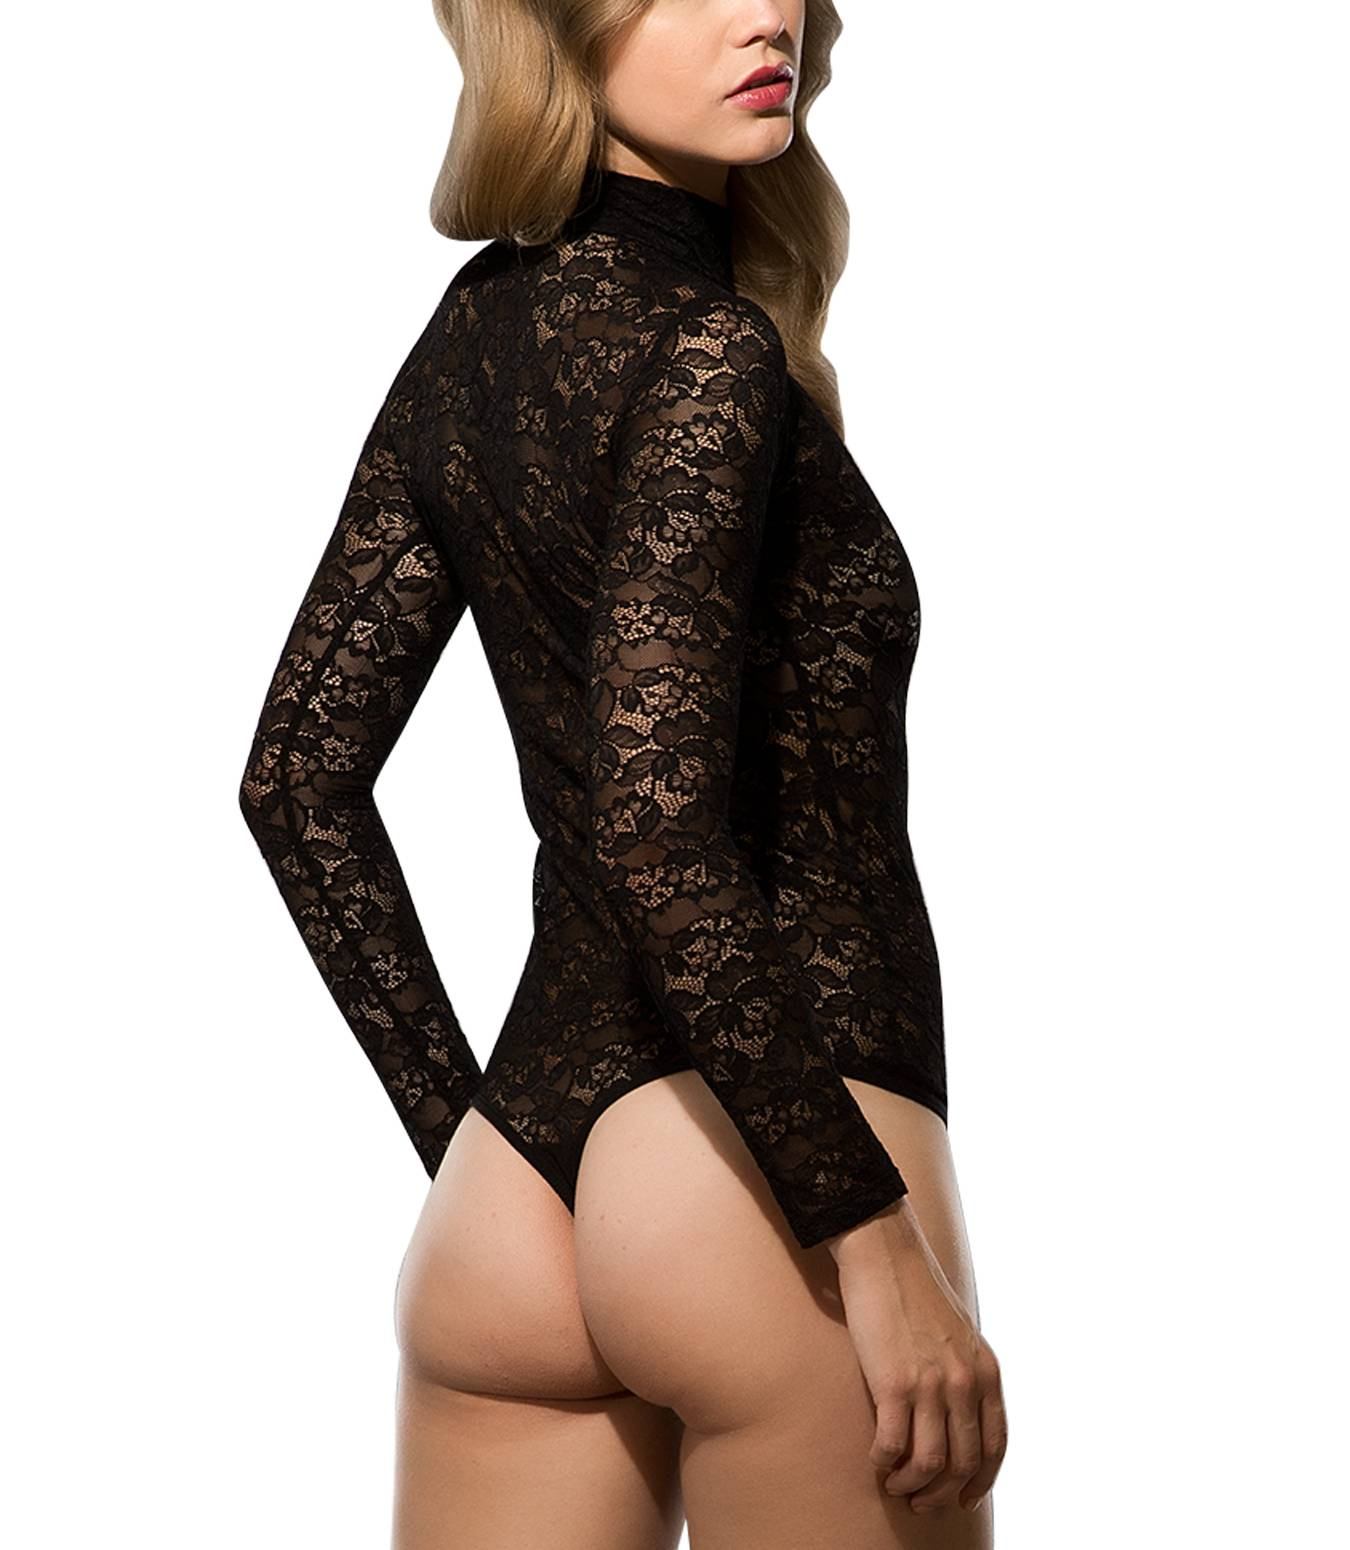 Damen Stringbody Spitzenbody Tüllbody Body Florale Spitze Bodysuit Lace S-XL